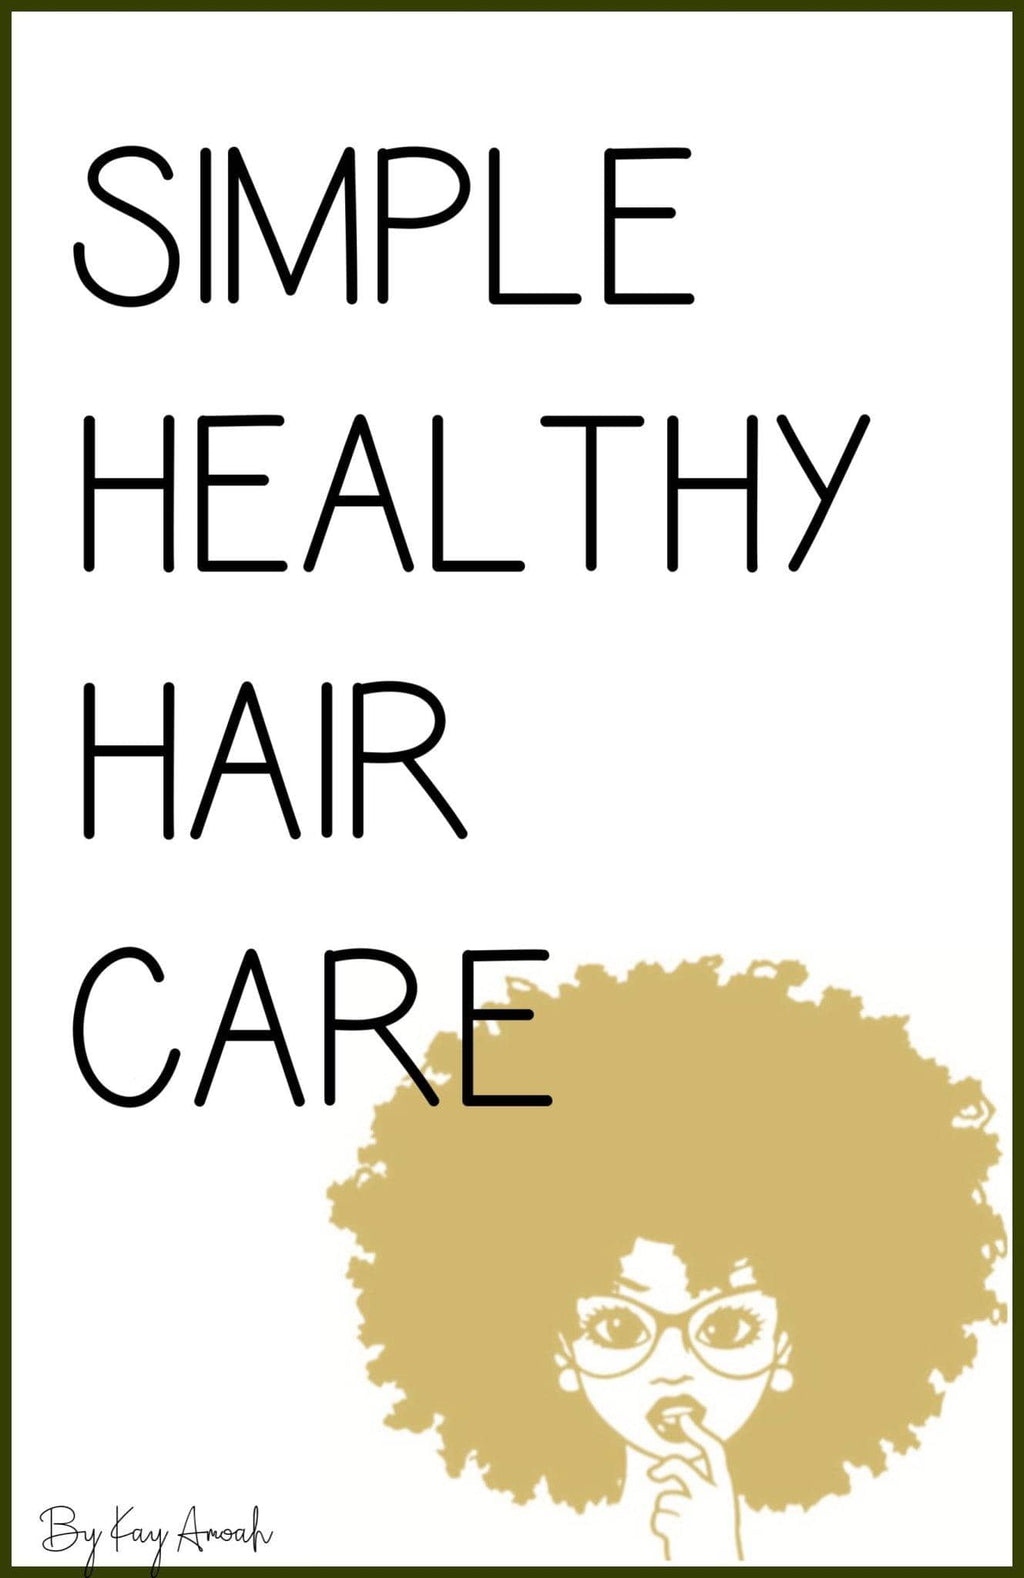 SIMPLE HEALTHY HAIR CARE - eBook - kiyacosmetics